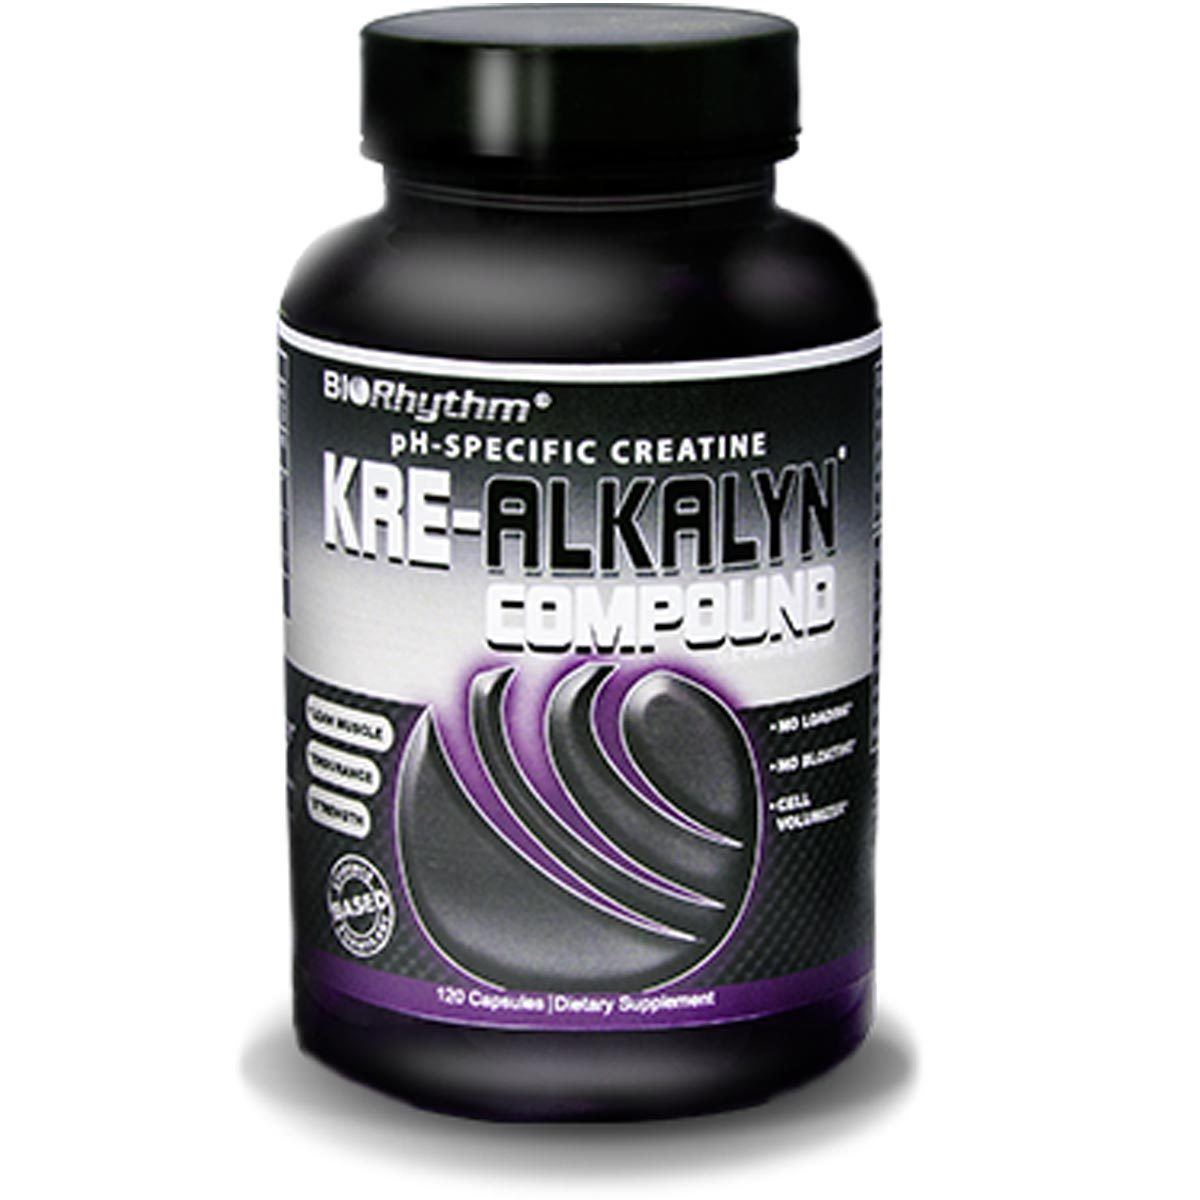 BioRhythm Kre-Alkalyn Compound 120 Caps Creatine BioRhythm  (1059192766507)